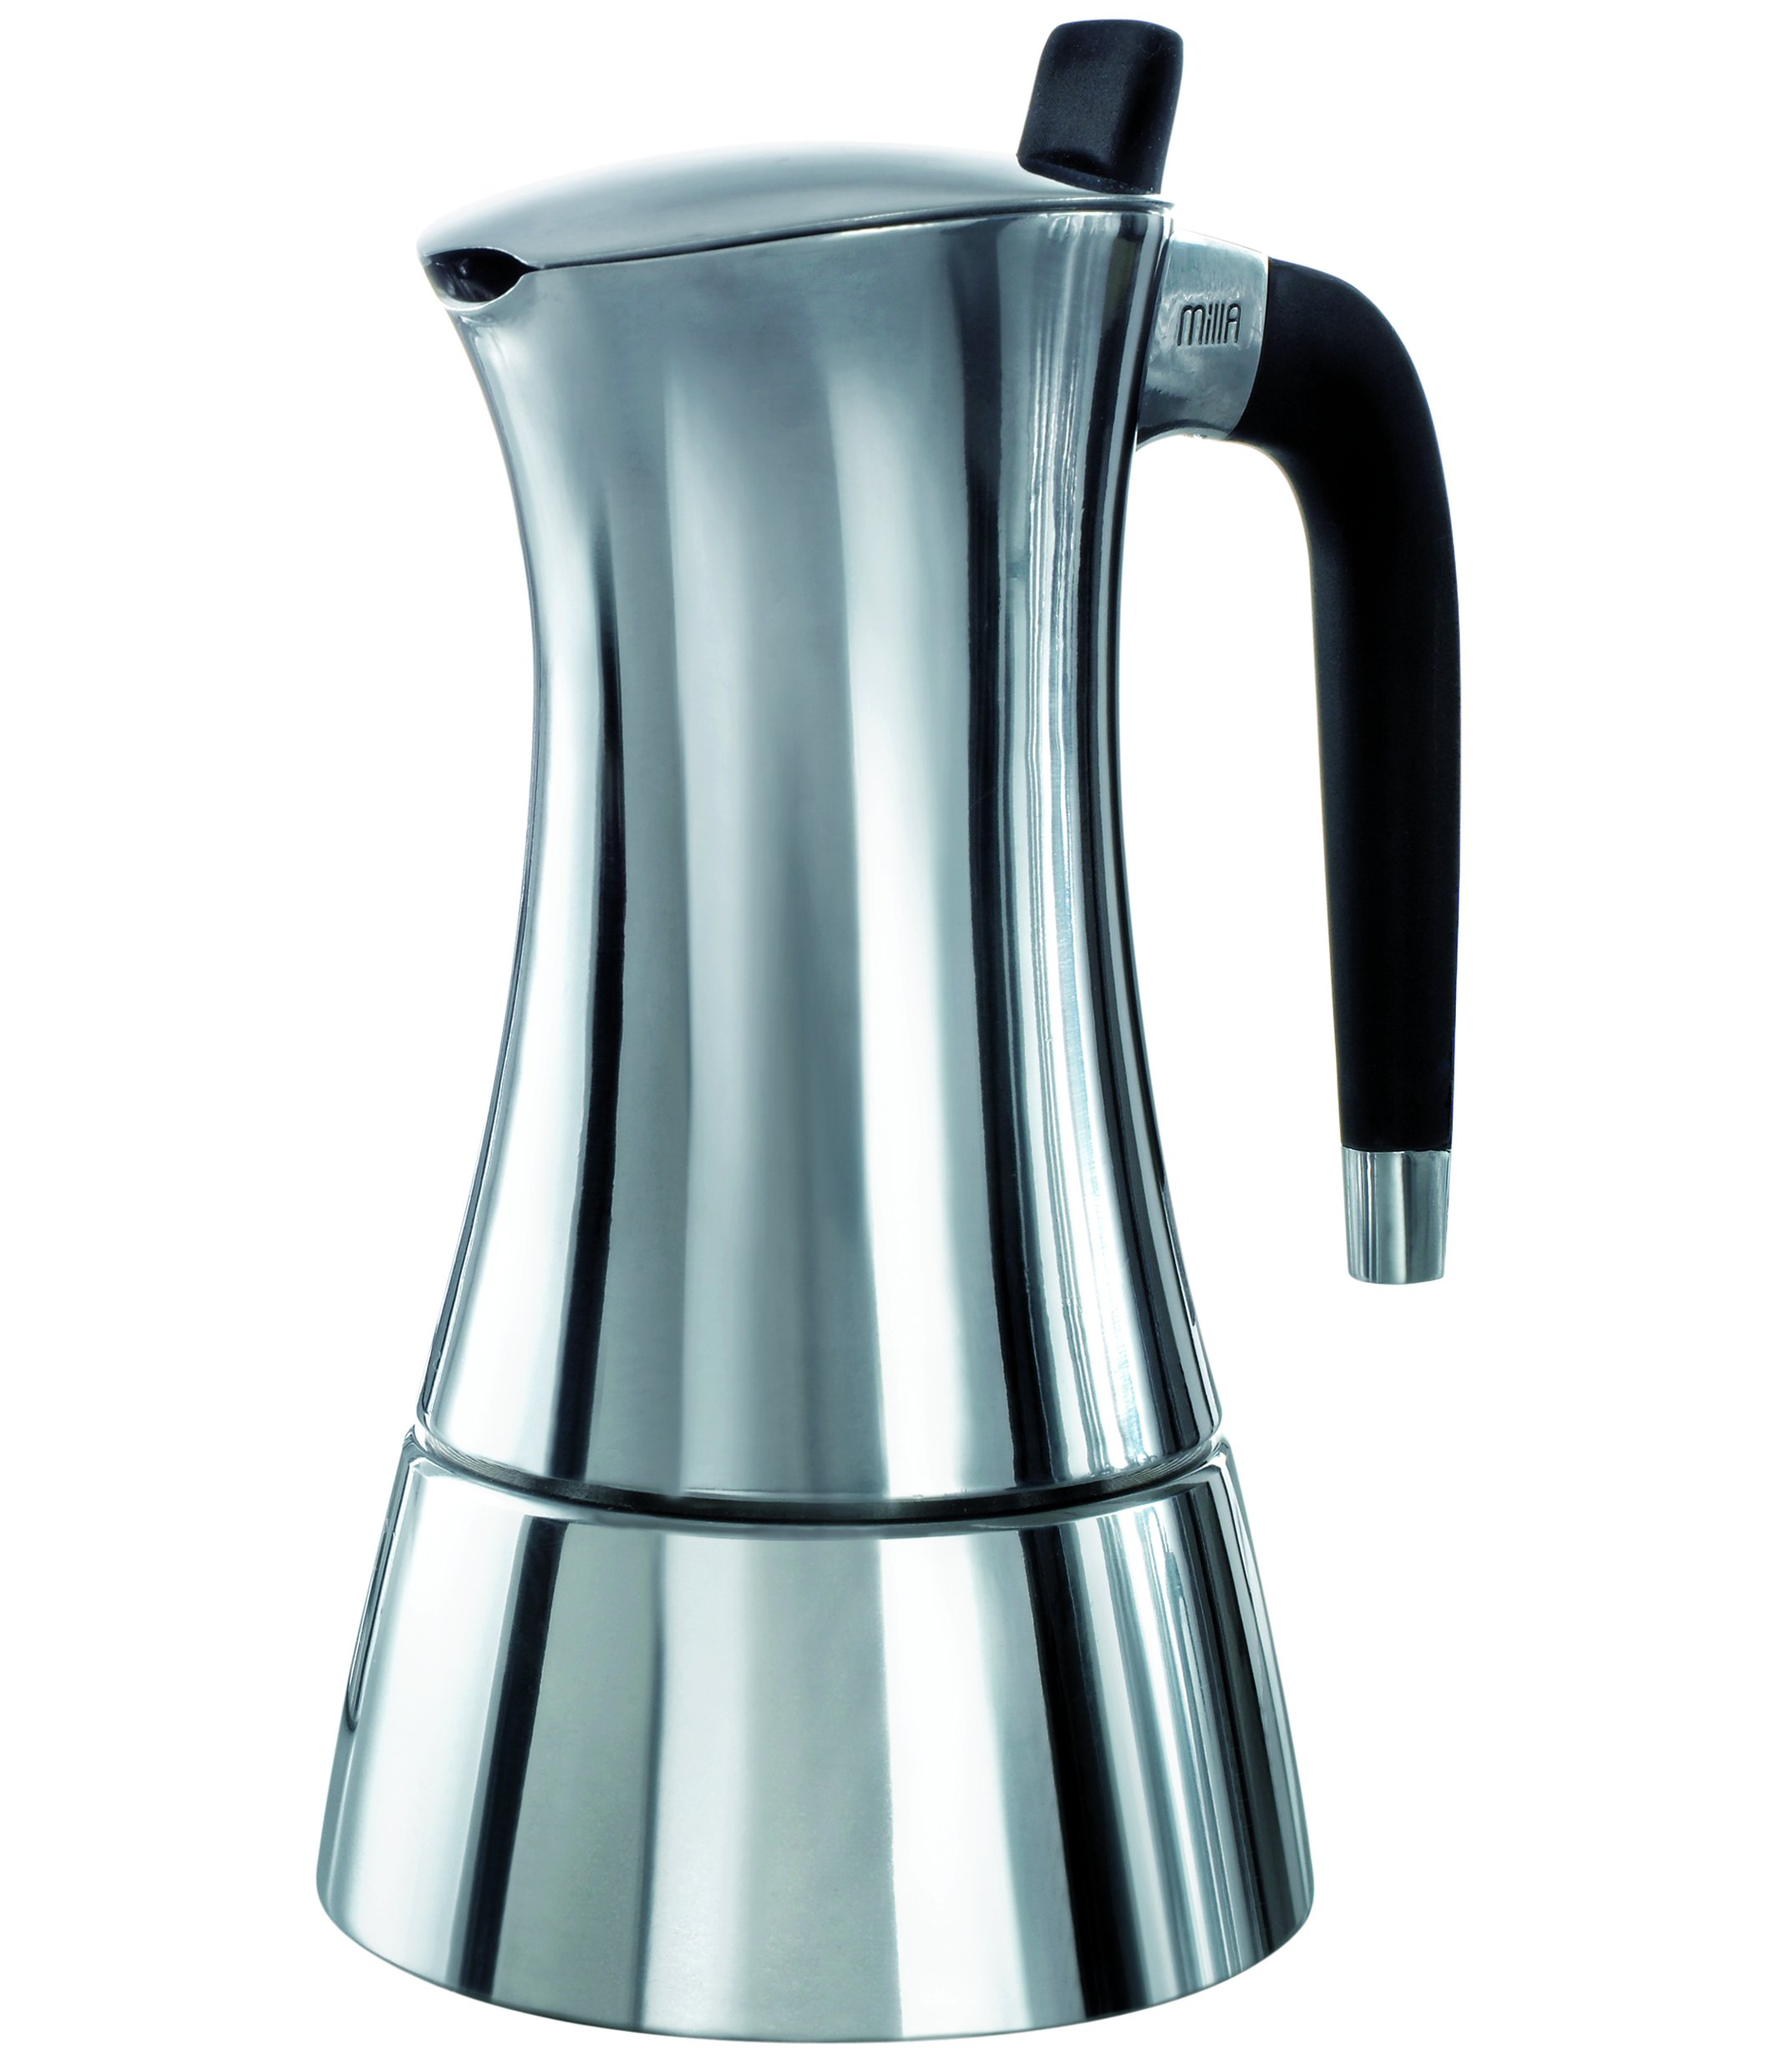 BUGATTI - ''Milla'' Coffee maker 6 cups